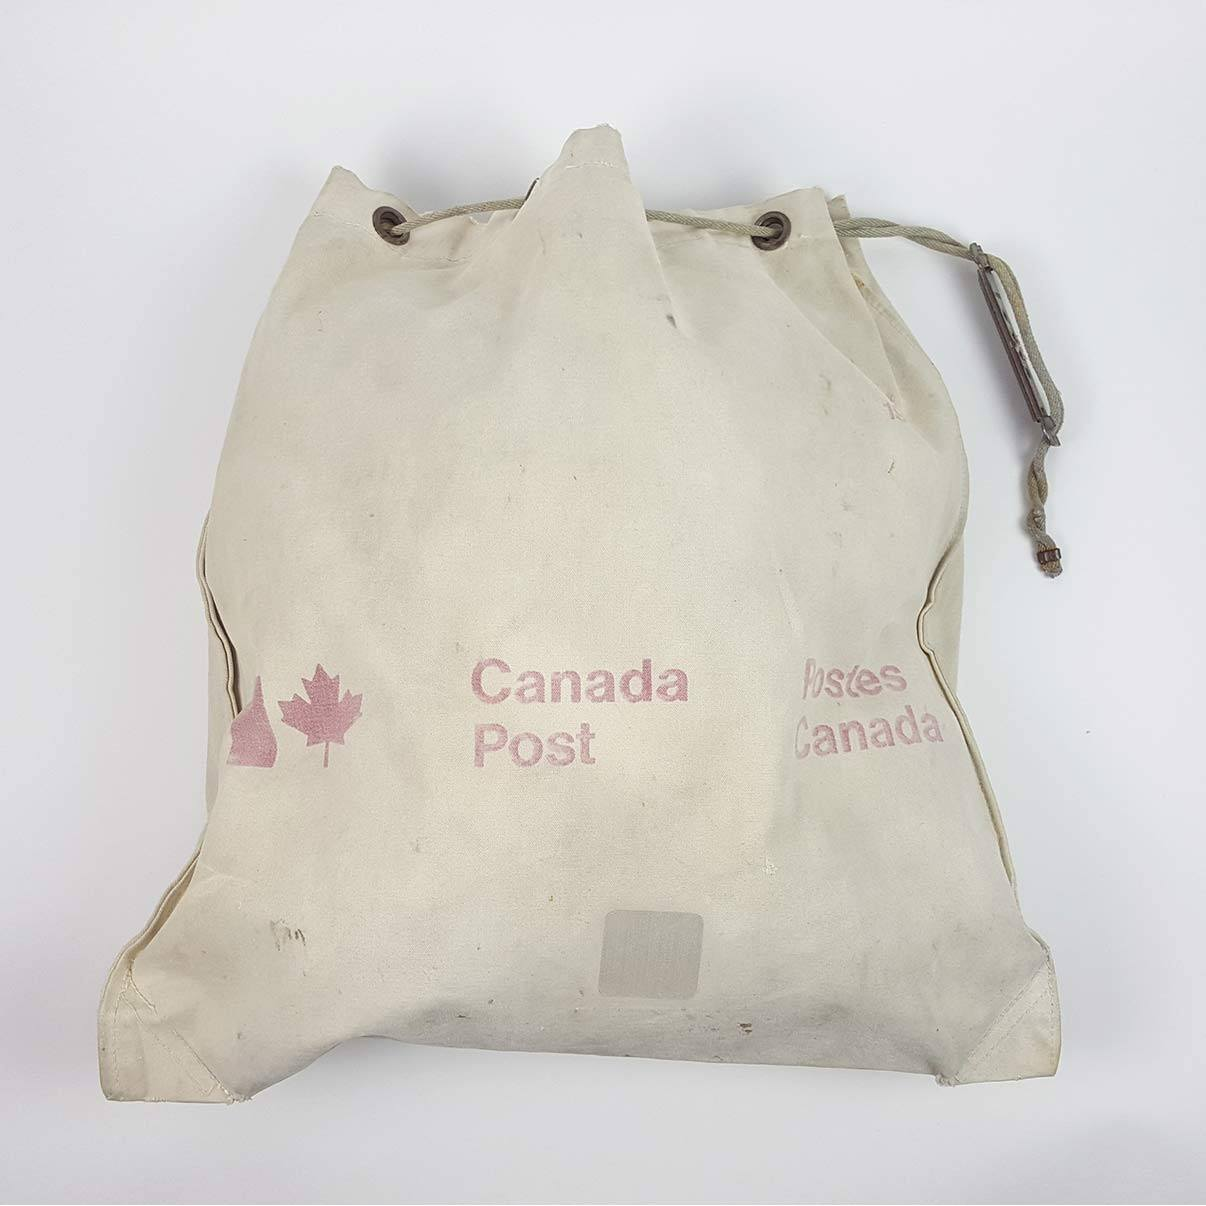 1980 Canada Post Mail Bag - www.kanahta.com - 1